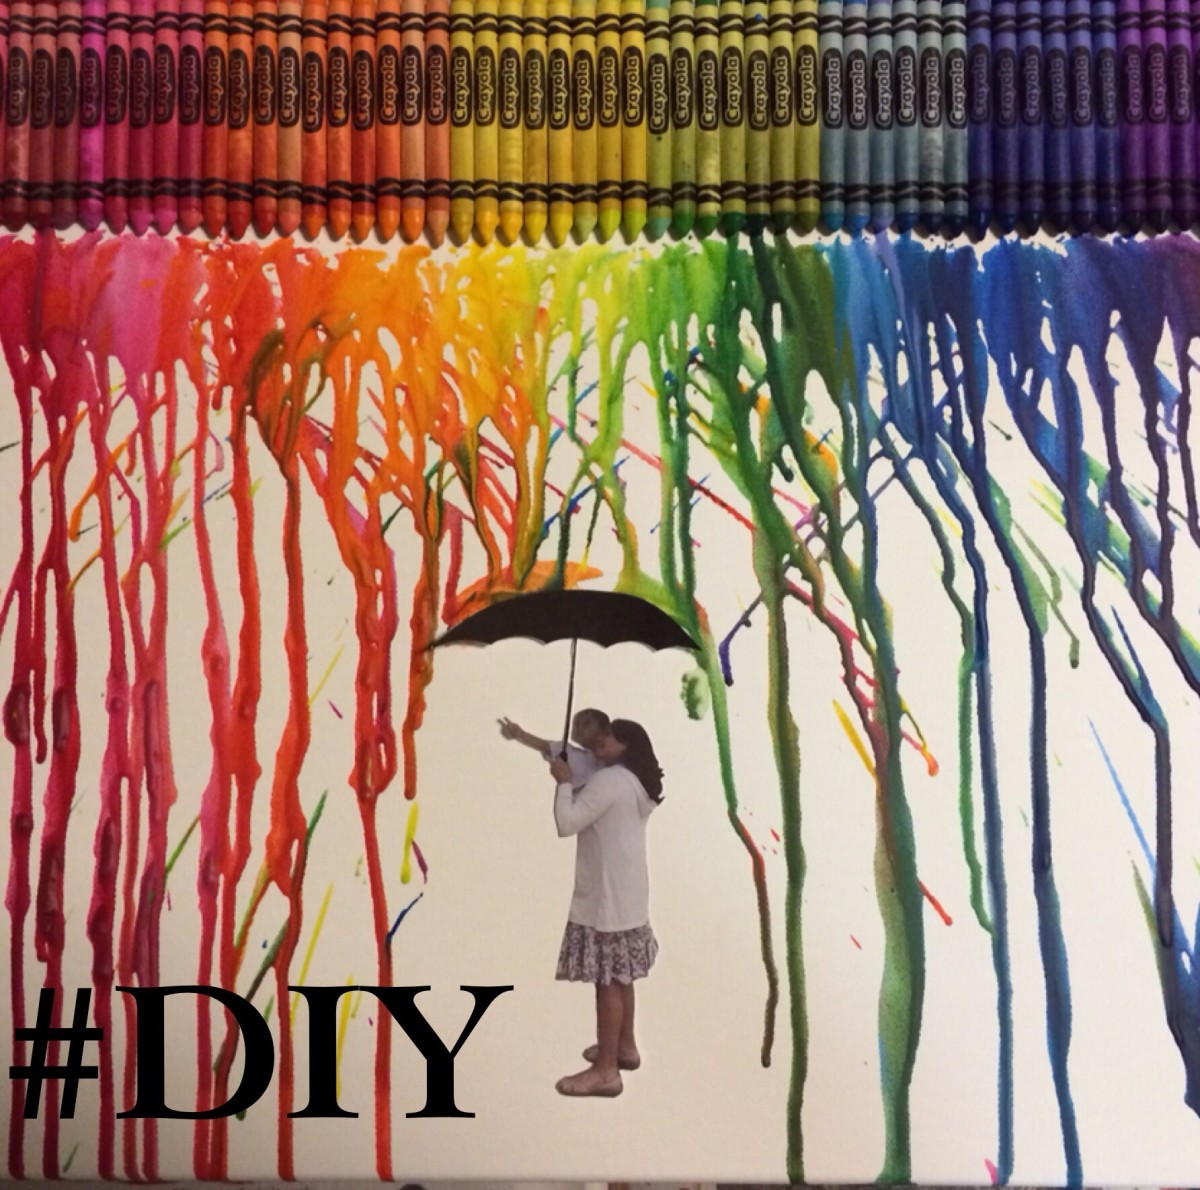 How to Make Your Own Personalized Melted Crayon Art